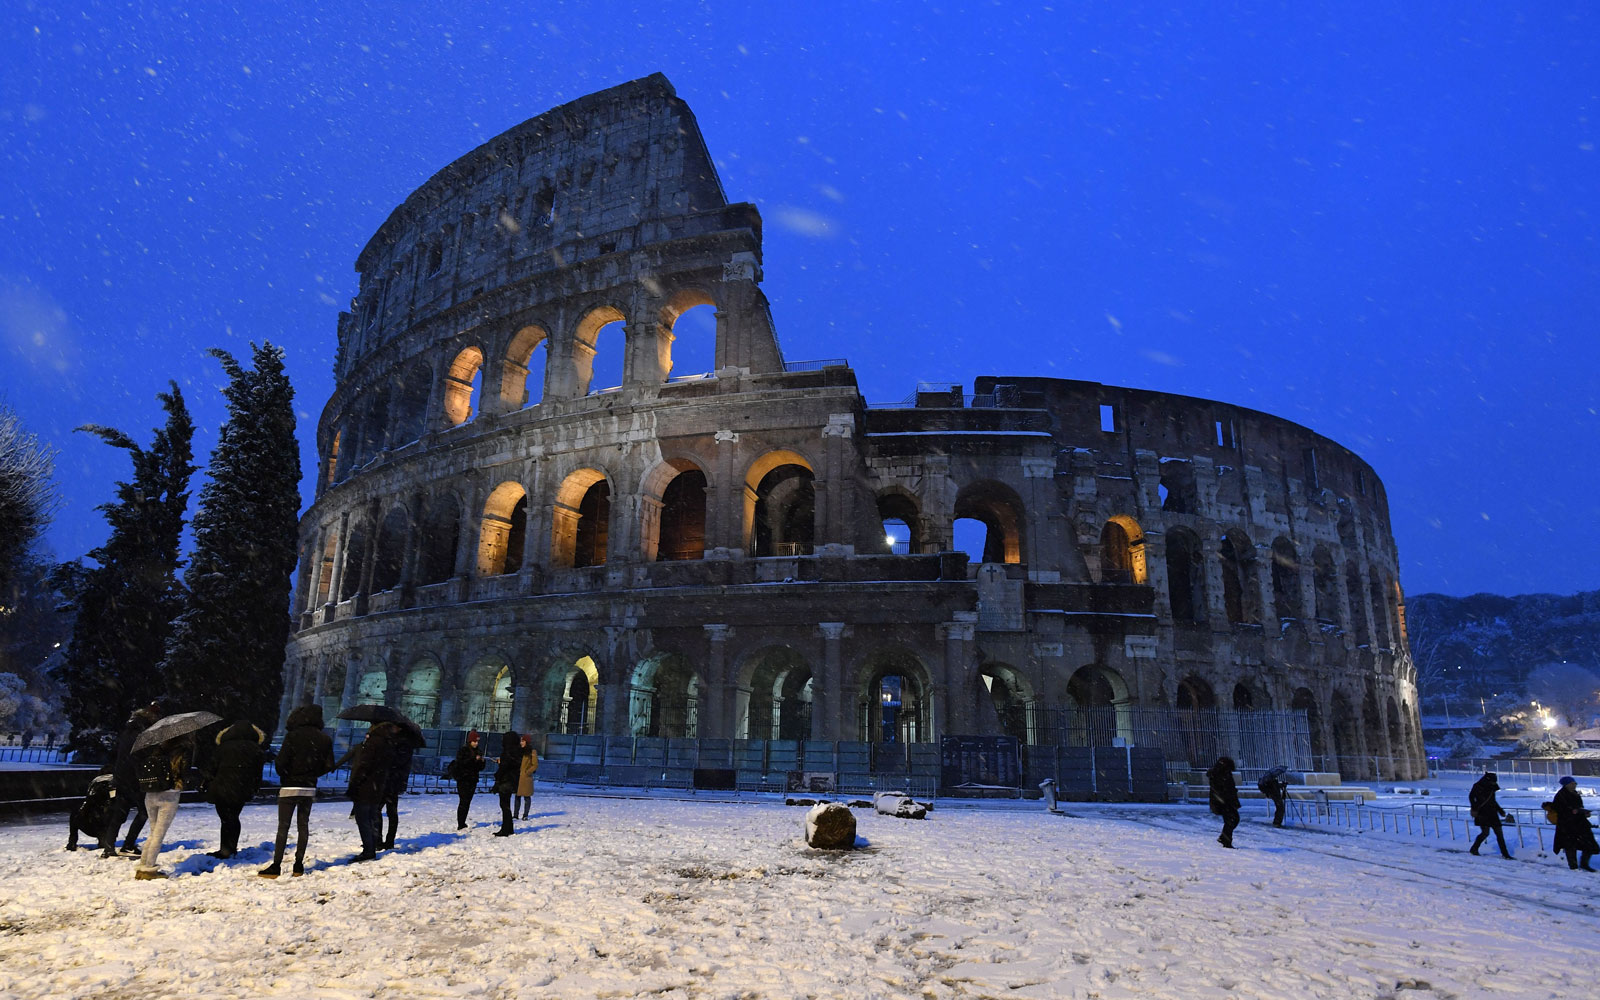 Rome After a Rare Snowfall Looks Like a Winter Wonderland